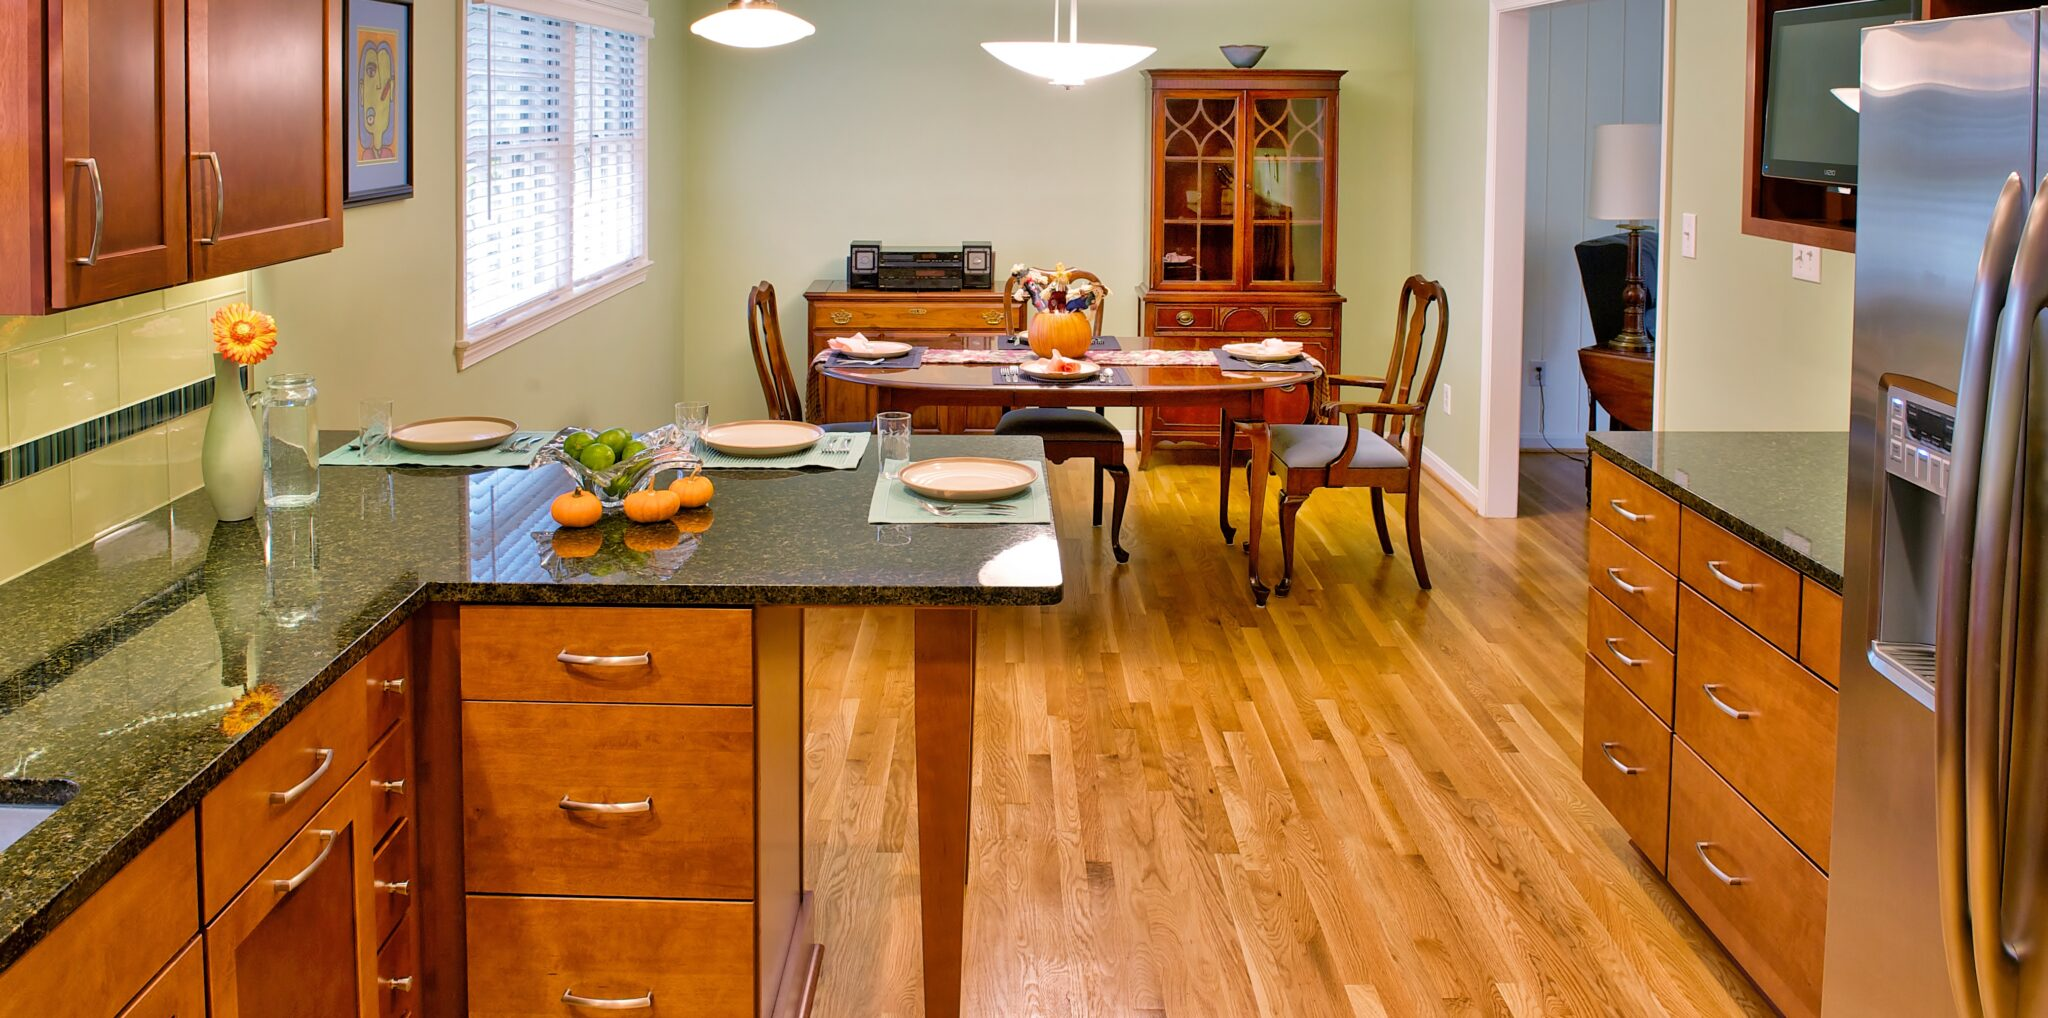 Warm Wood Flooring Light Wood Floors Give This Kitchen A